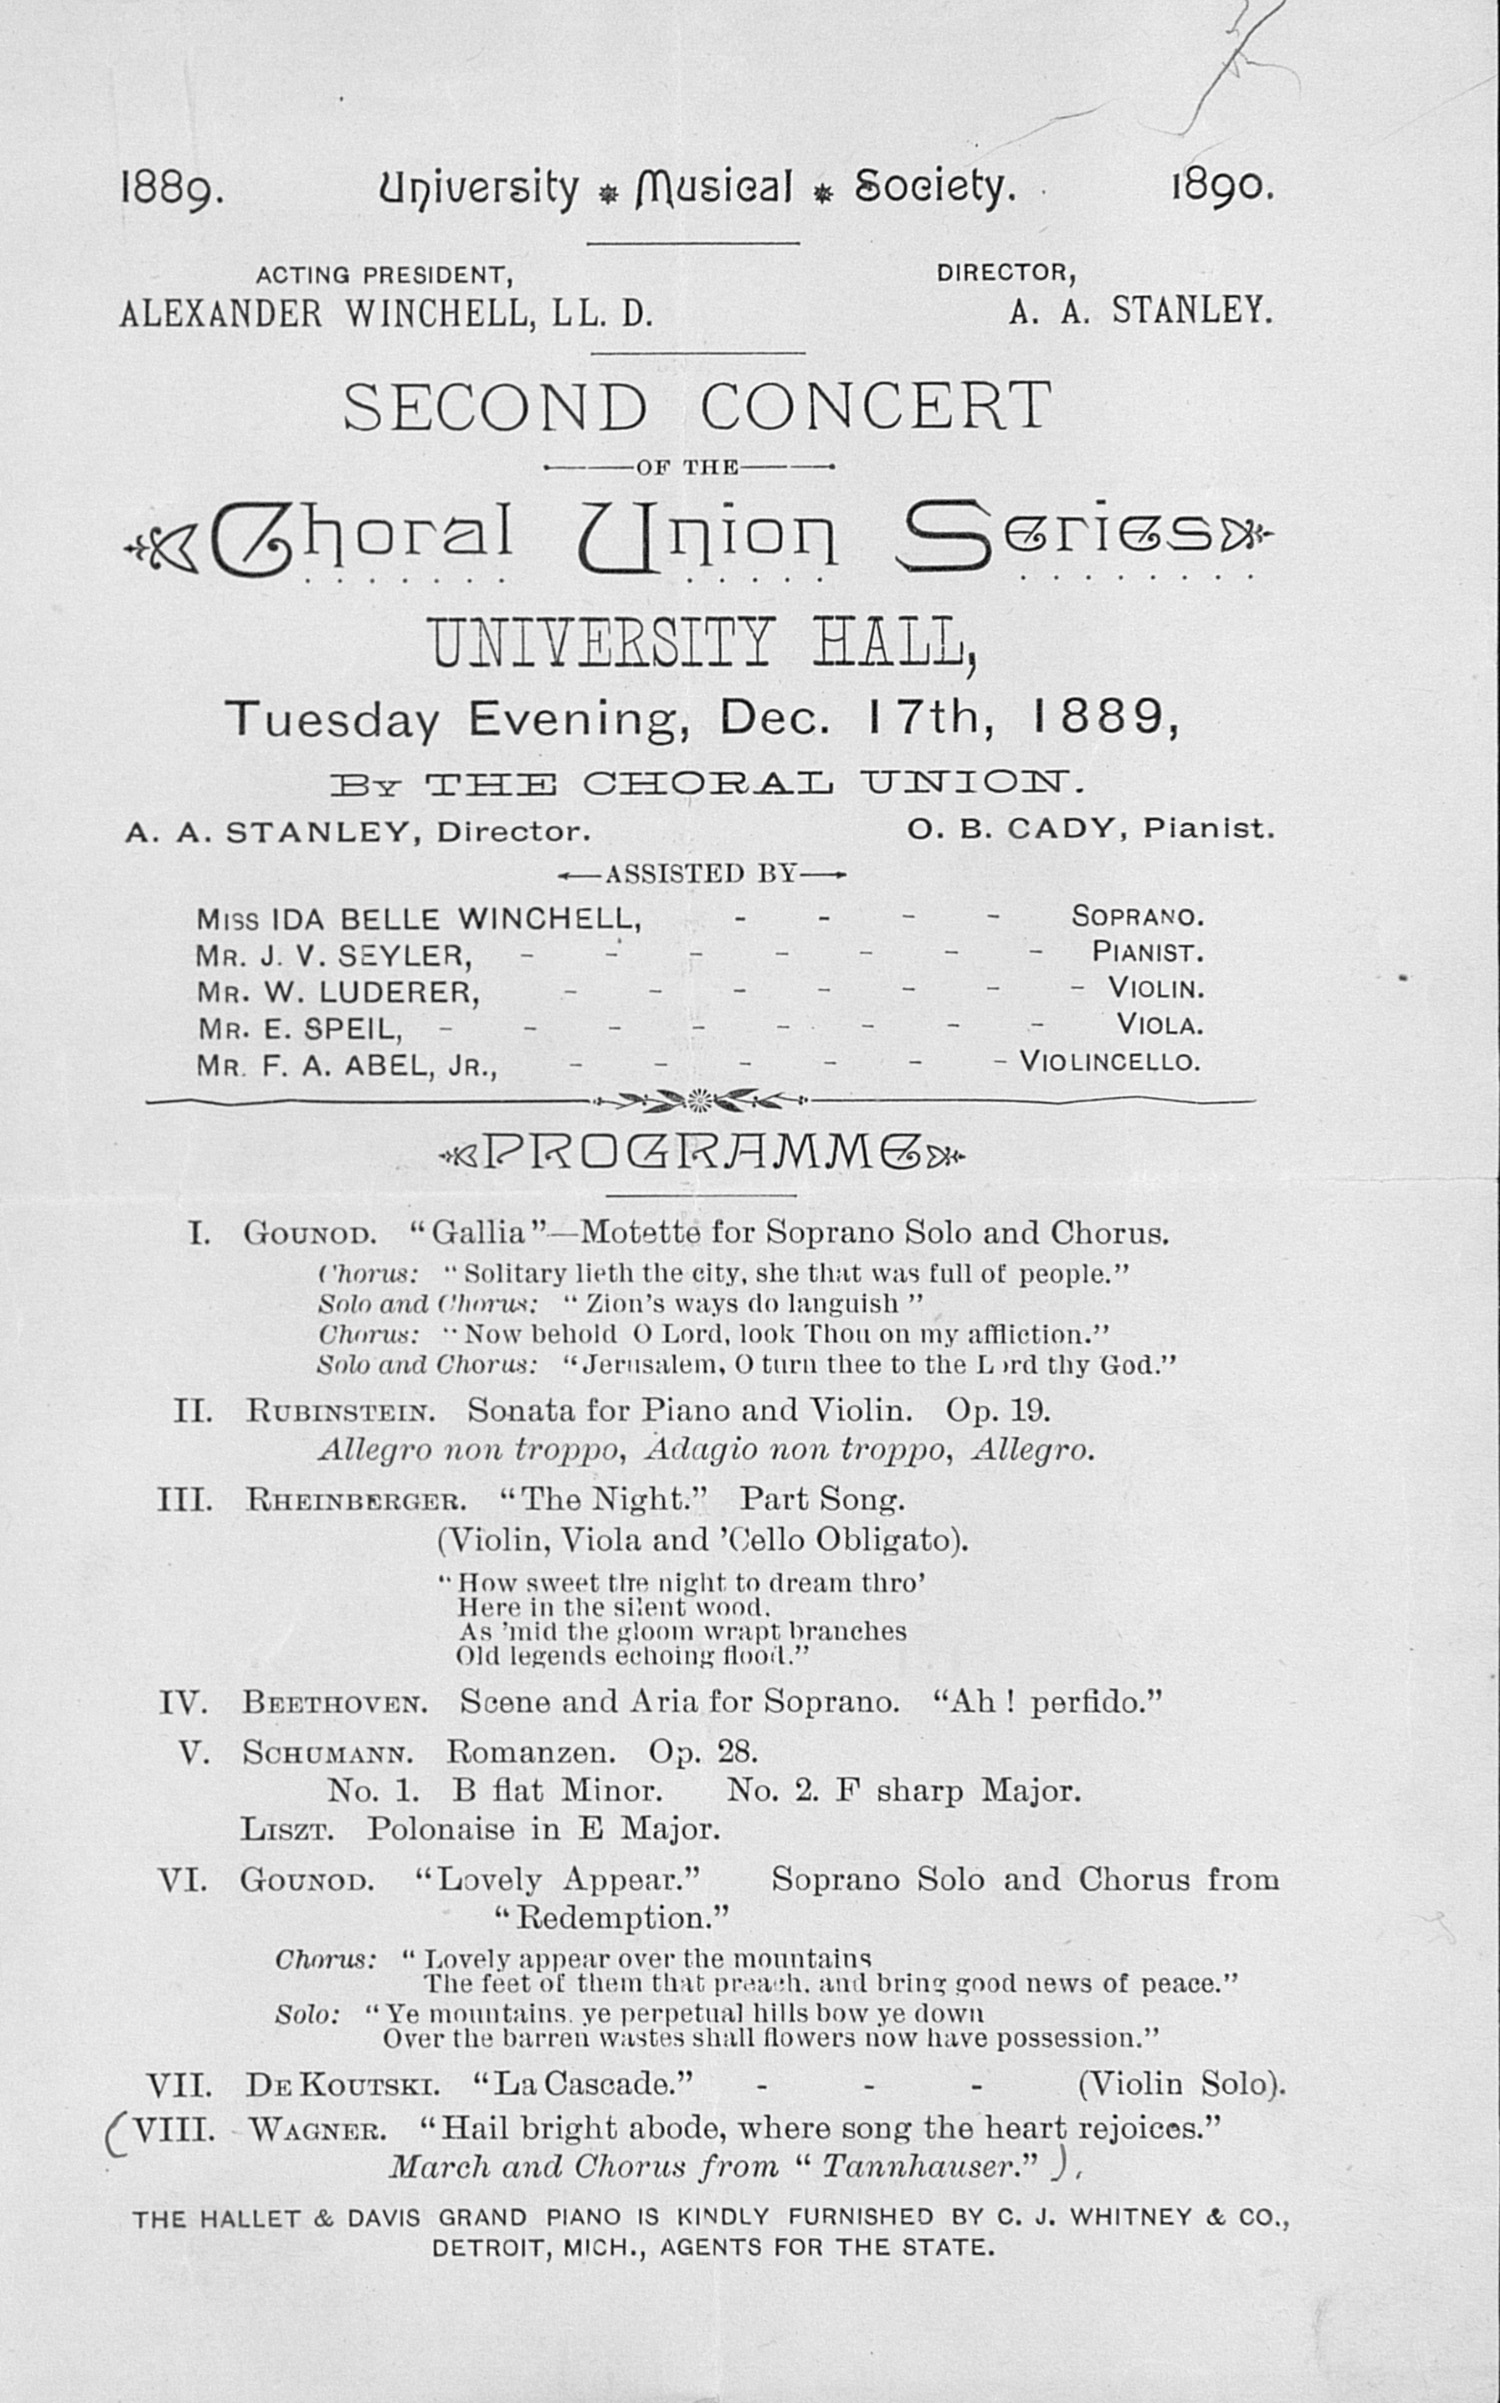 UMS Concert Program, Dec. 17th, 1889: Second Concert Of The Choral Union Series -- The Choral Union image